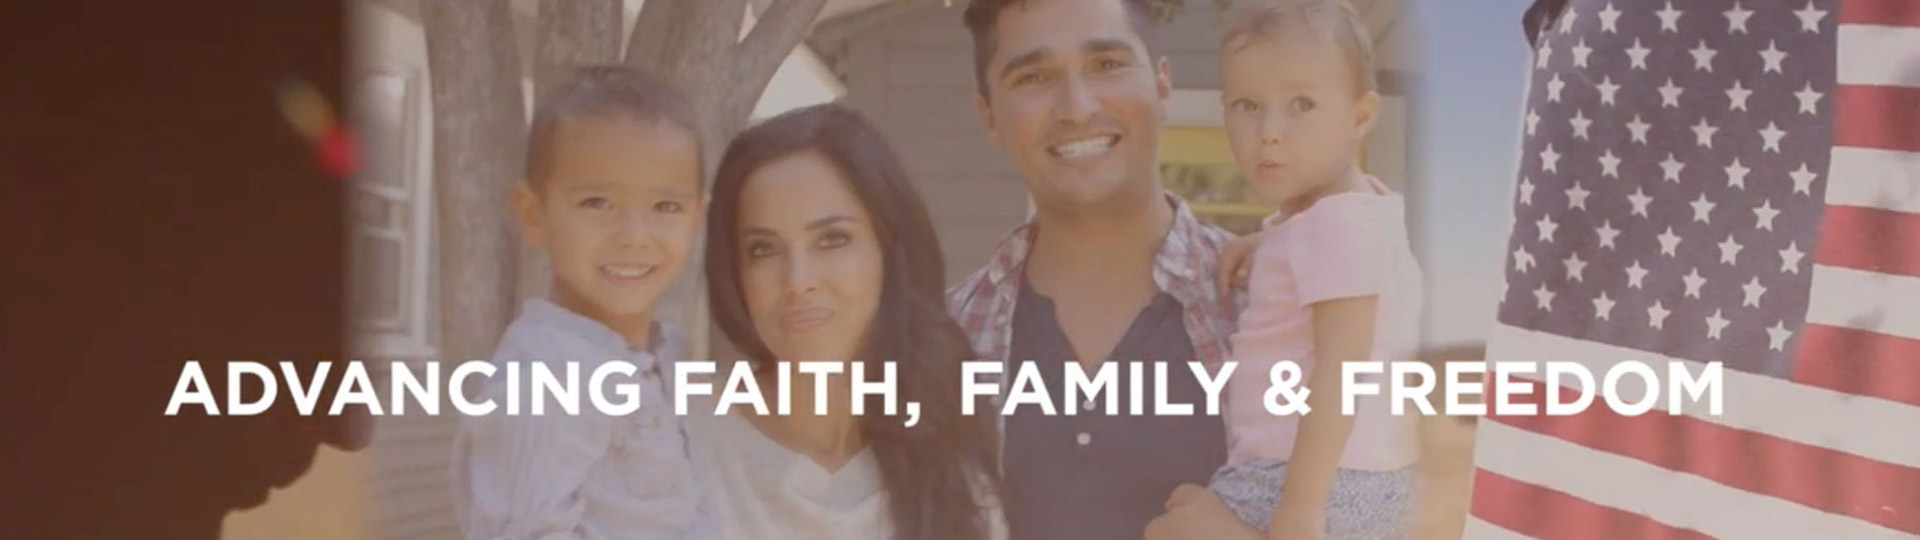 Watch: Advacning Faith, Family, and Freedom